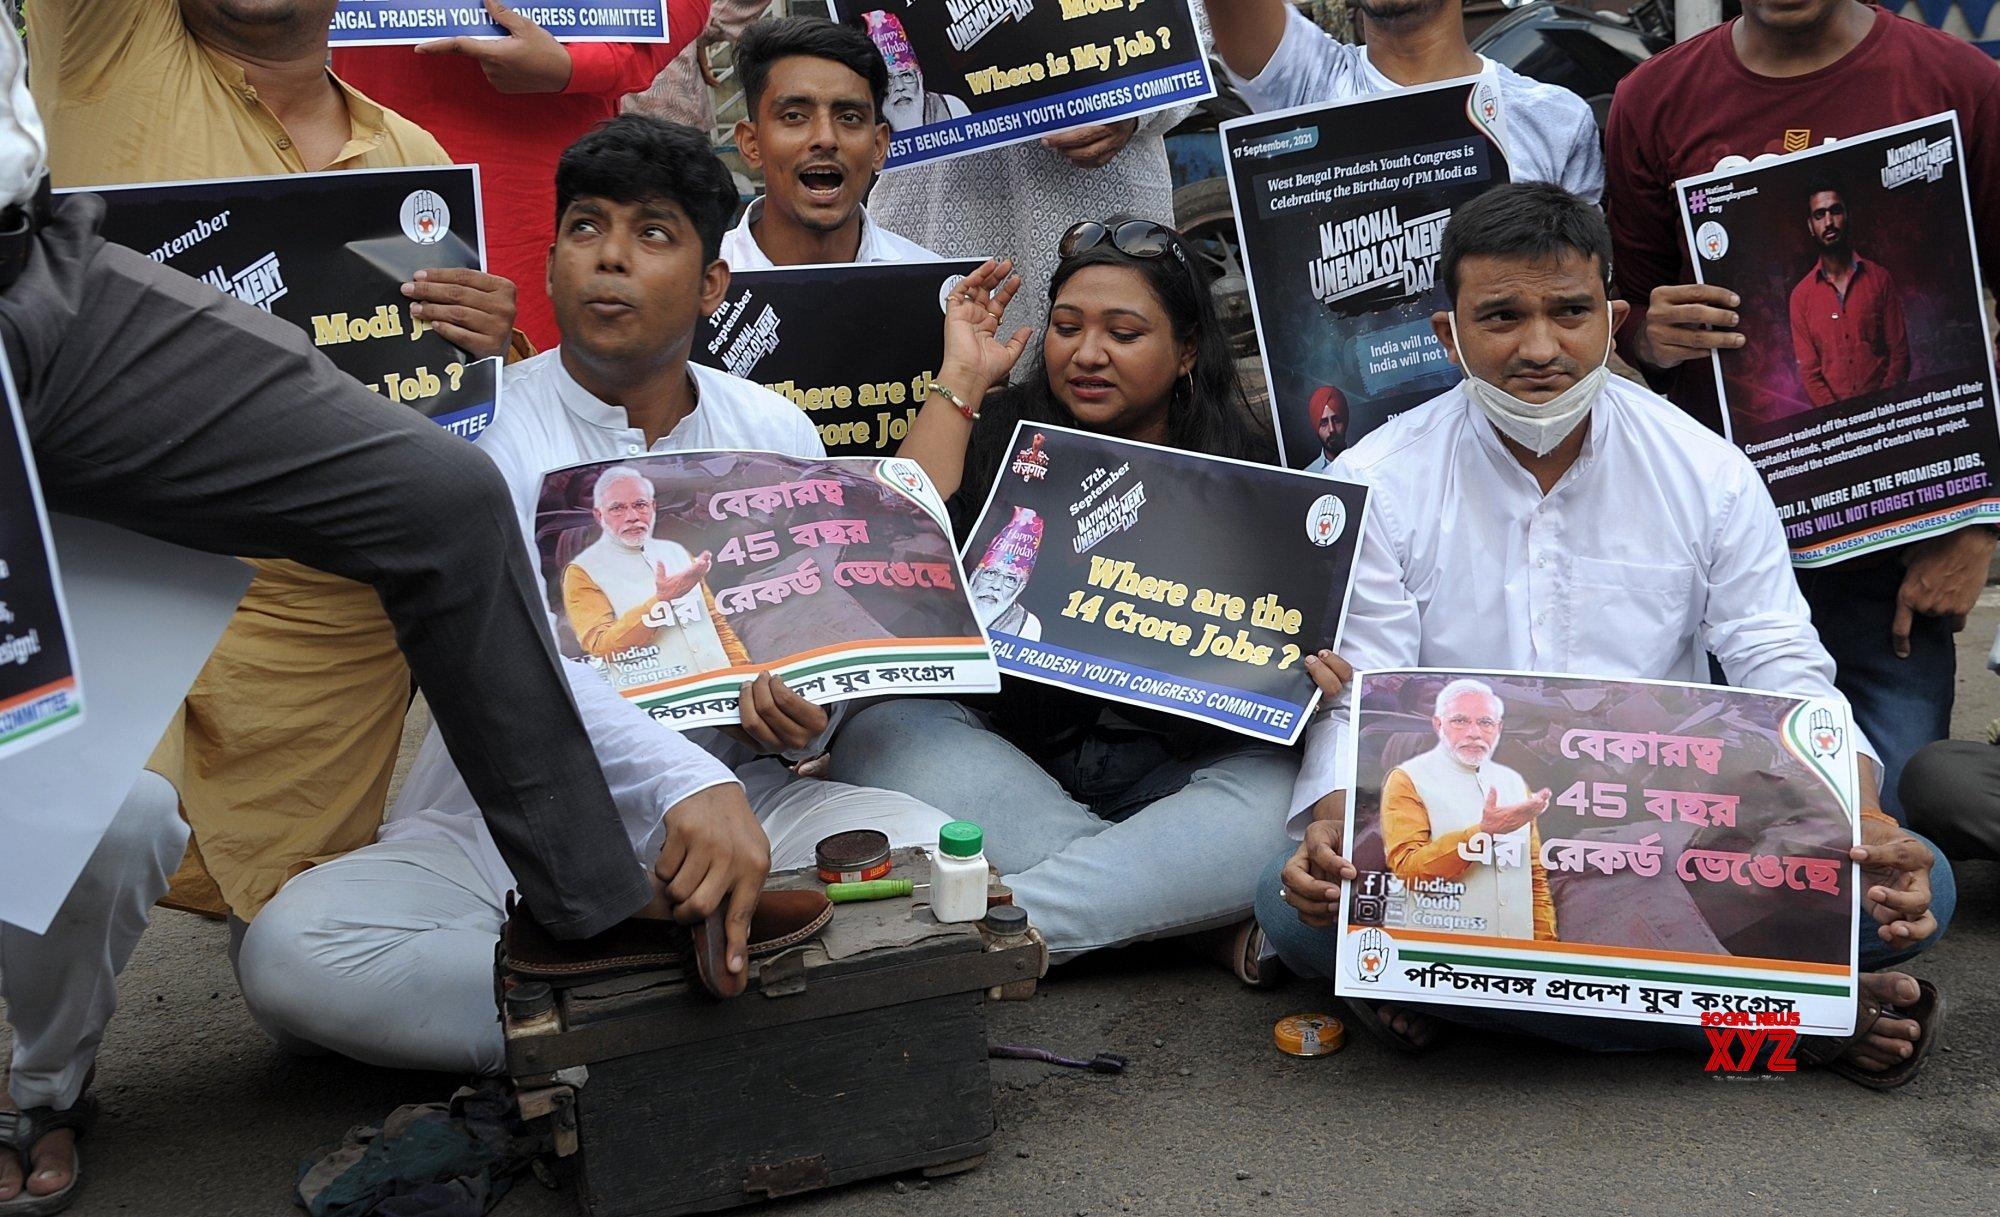 Calcutta: The West Bengal Pradesh Youth Congress is holding a HallaBol protest rally to mark September 17 National Unemployment Day - the birthday of Prime Minister Narendra Modi in Calcutta.  #Gallery